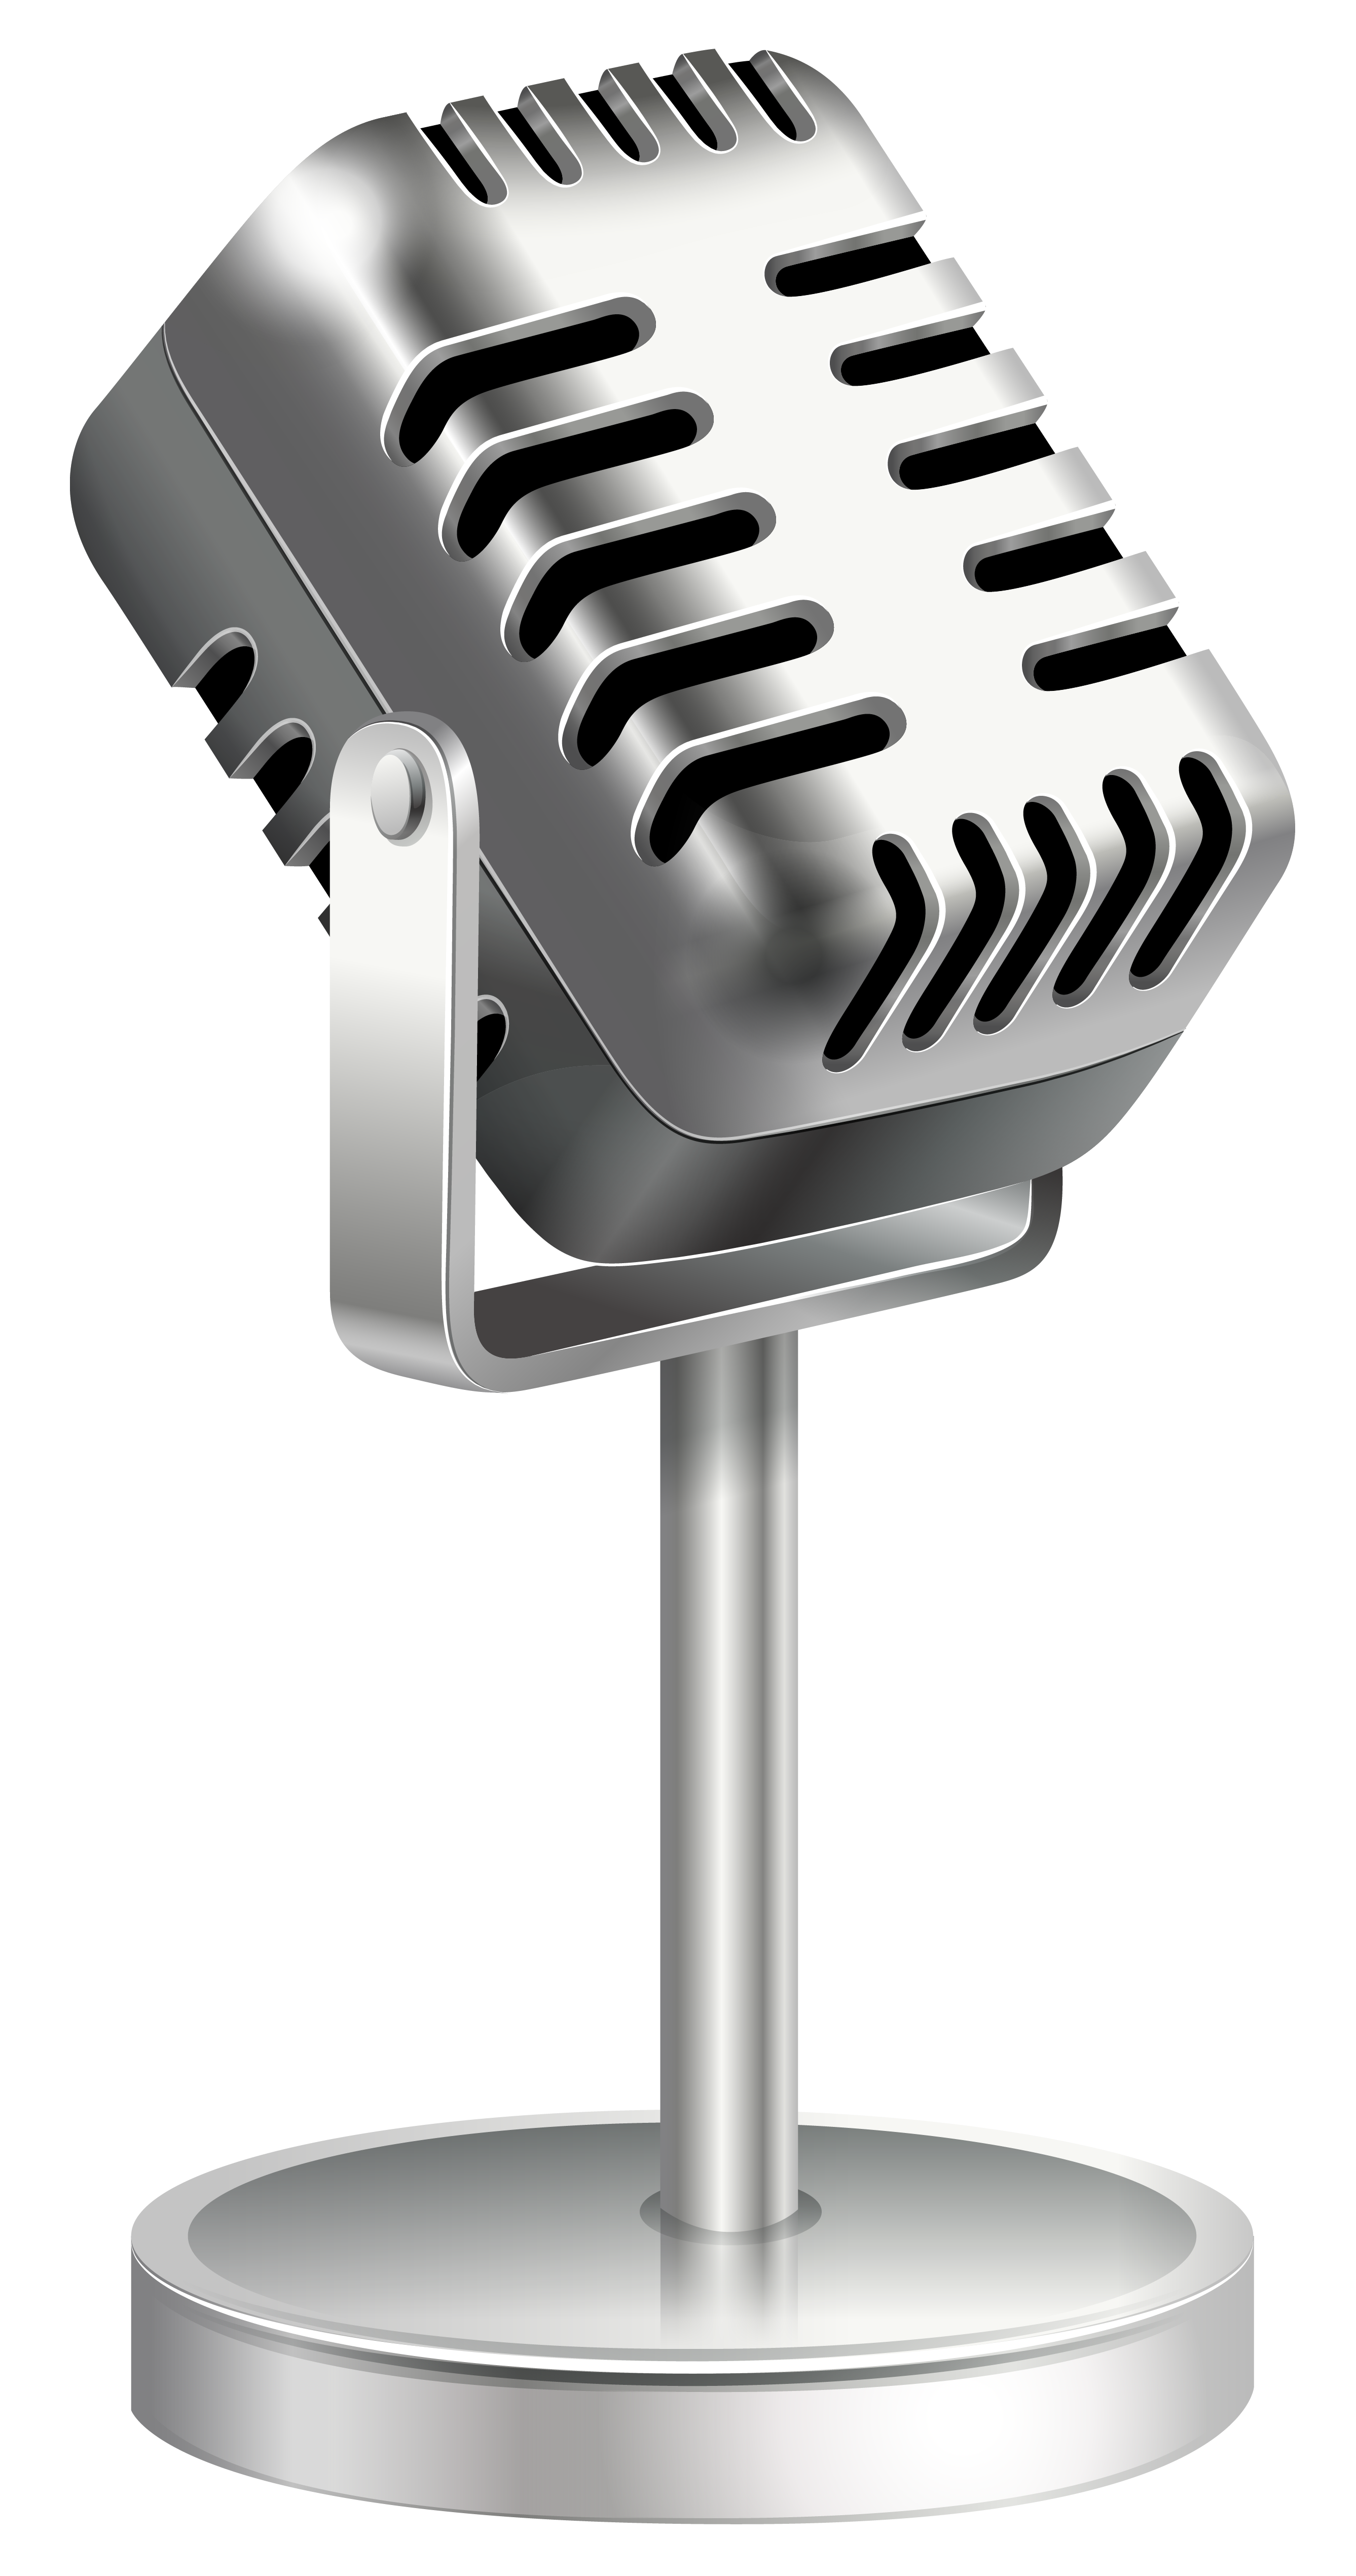 Retro microphone png. Clipart image gallery yopriceville